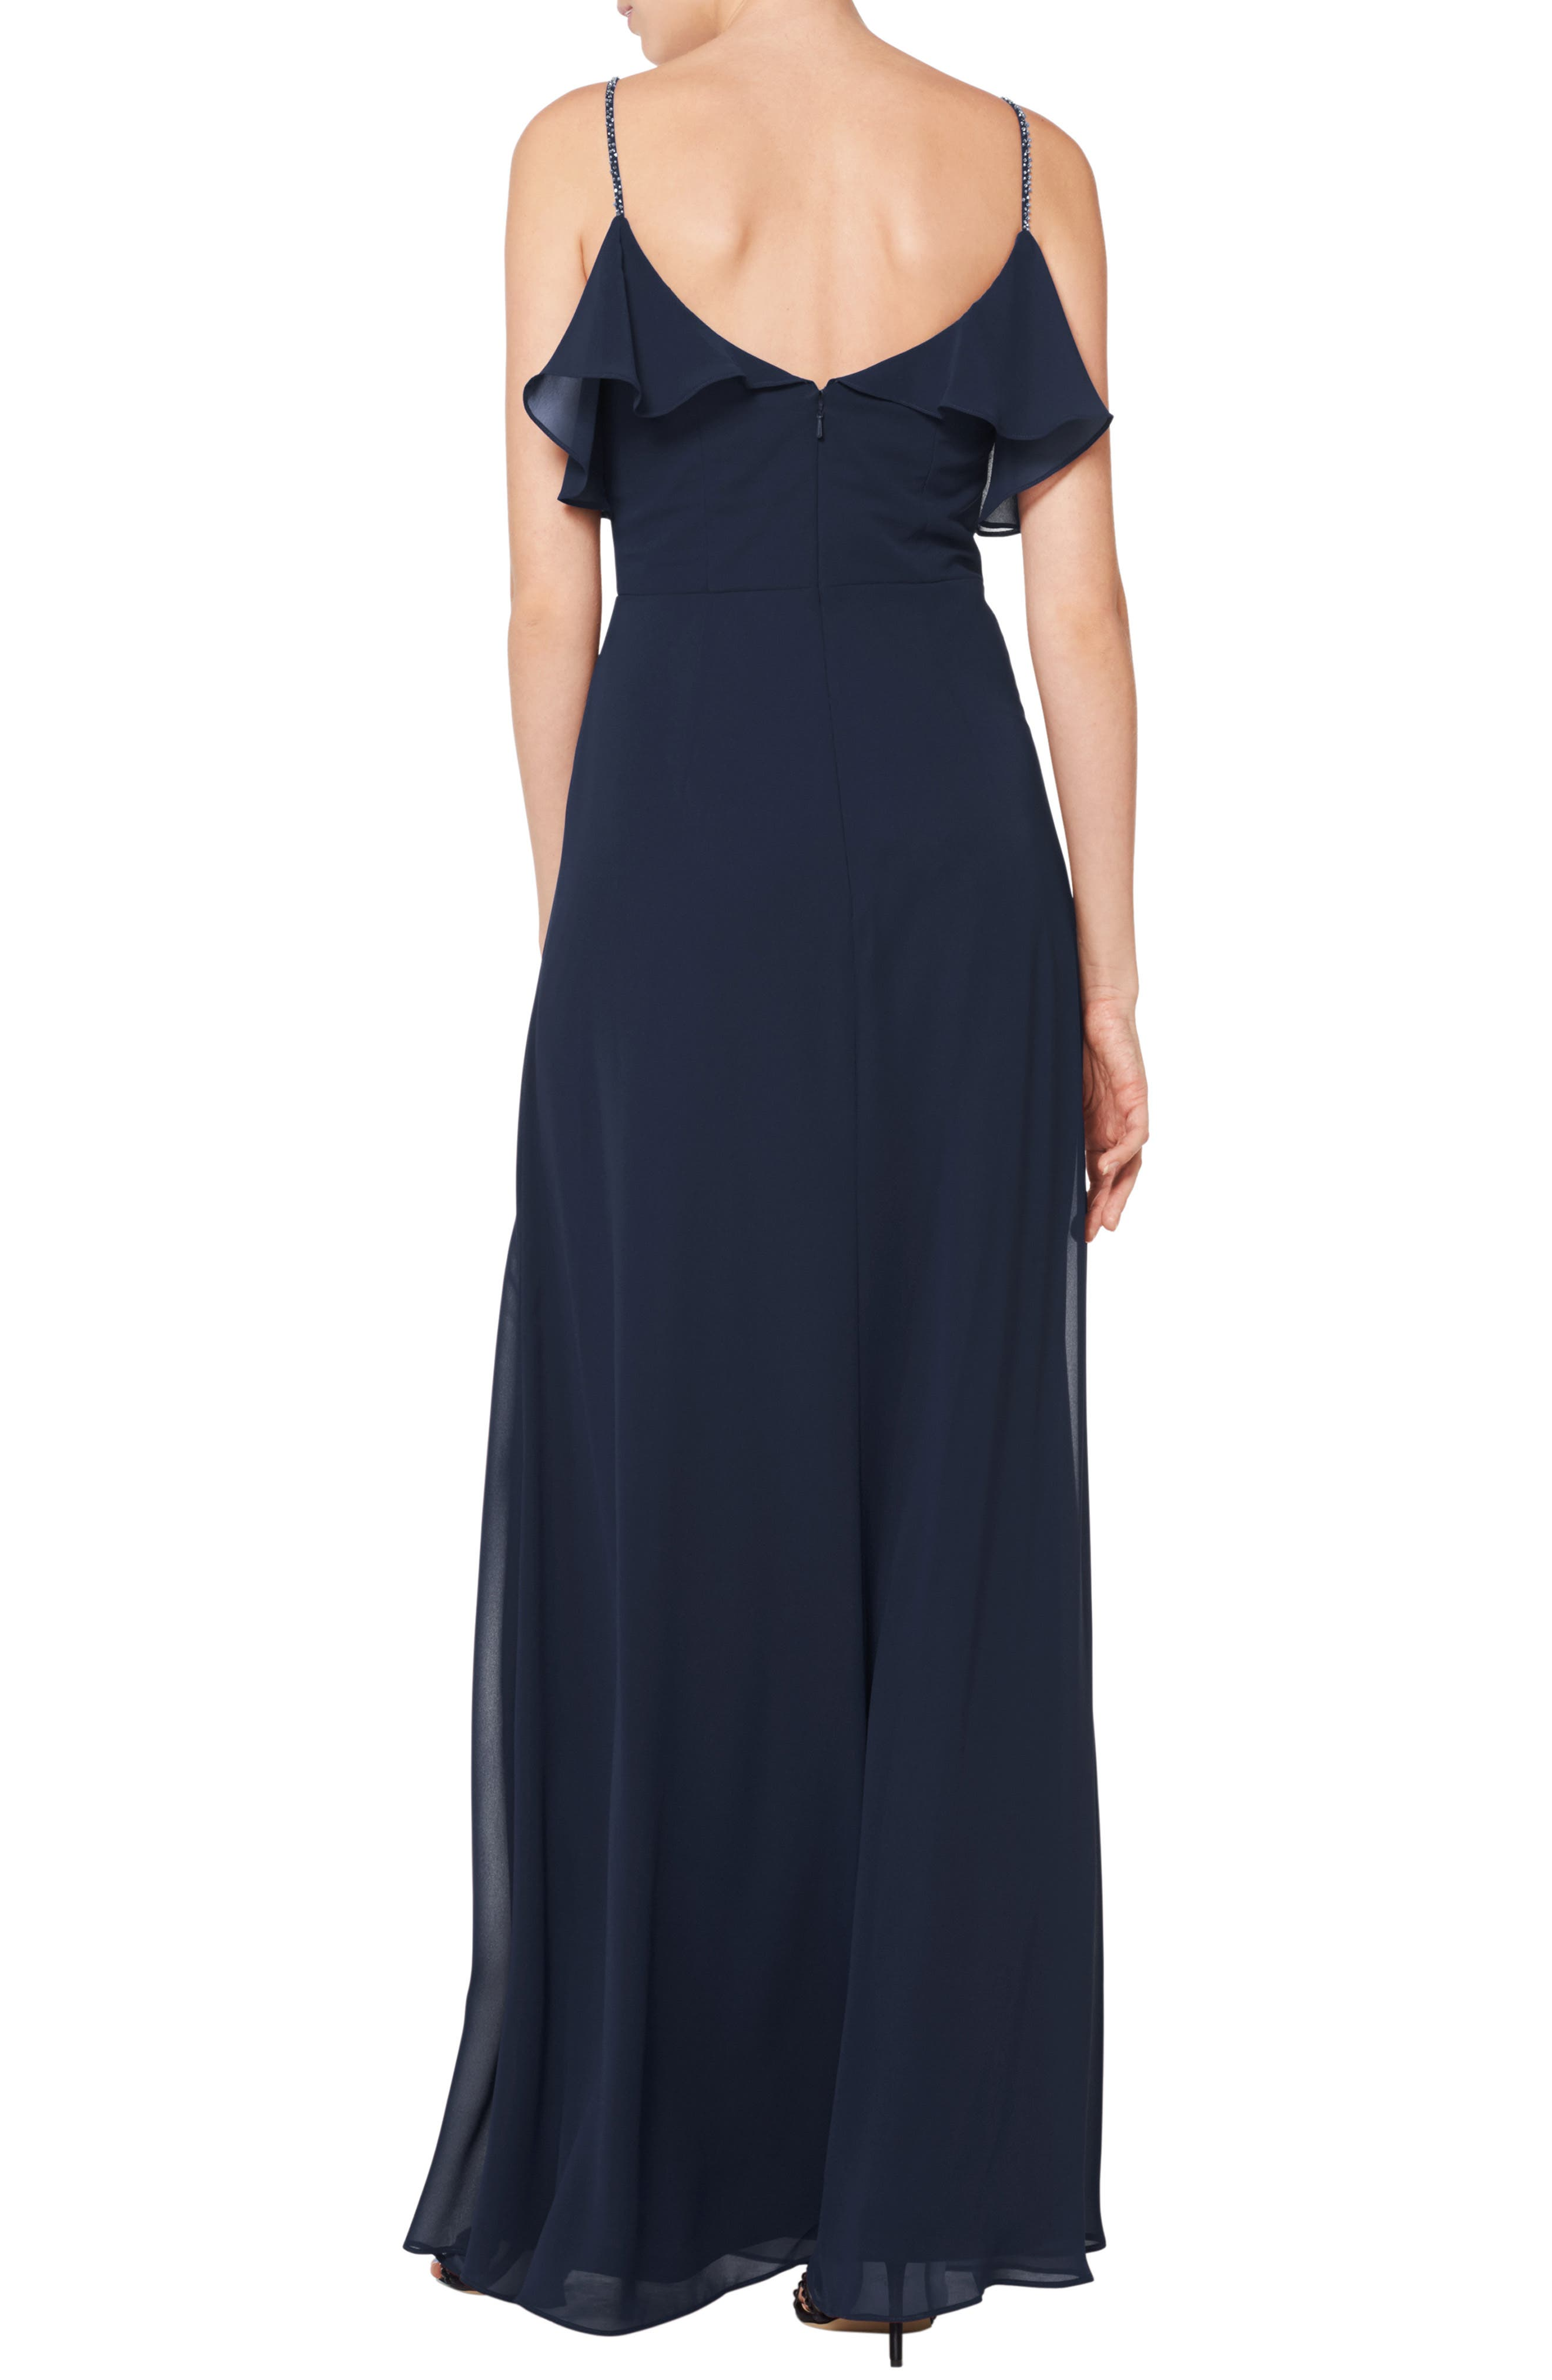 #LEVKOFF, Jeweled Strap Ruffle Neck Chiffon Gown, Alternate thumbnail 2, color, NAVY